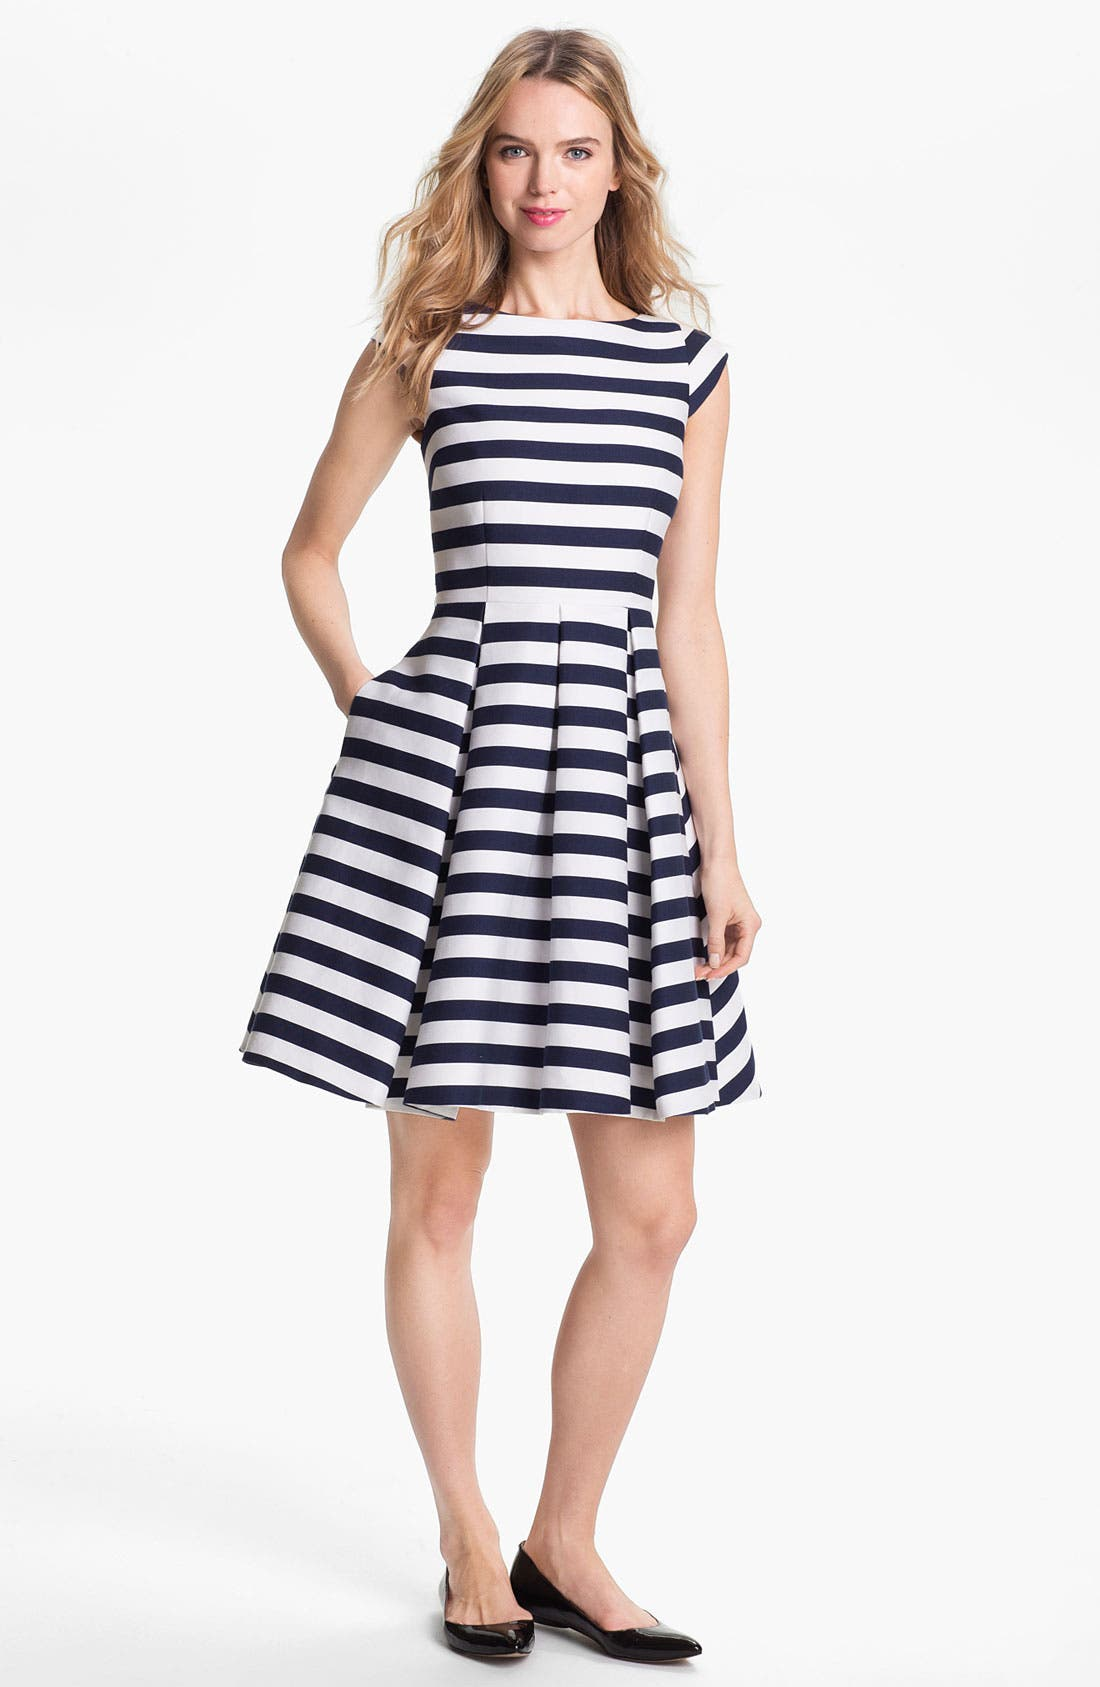 Alternate Image 1 Selected - kate spade new york 'mariella' cotton blend fit & flare dress